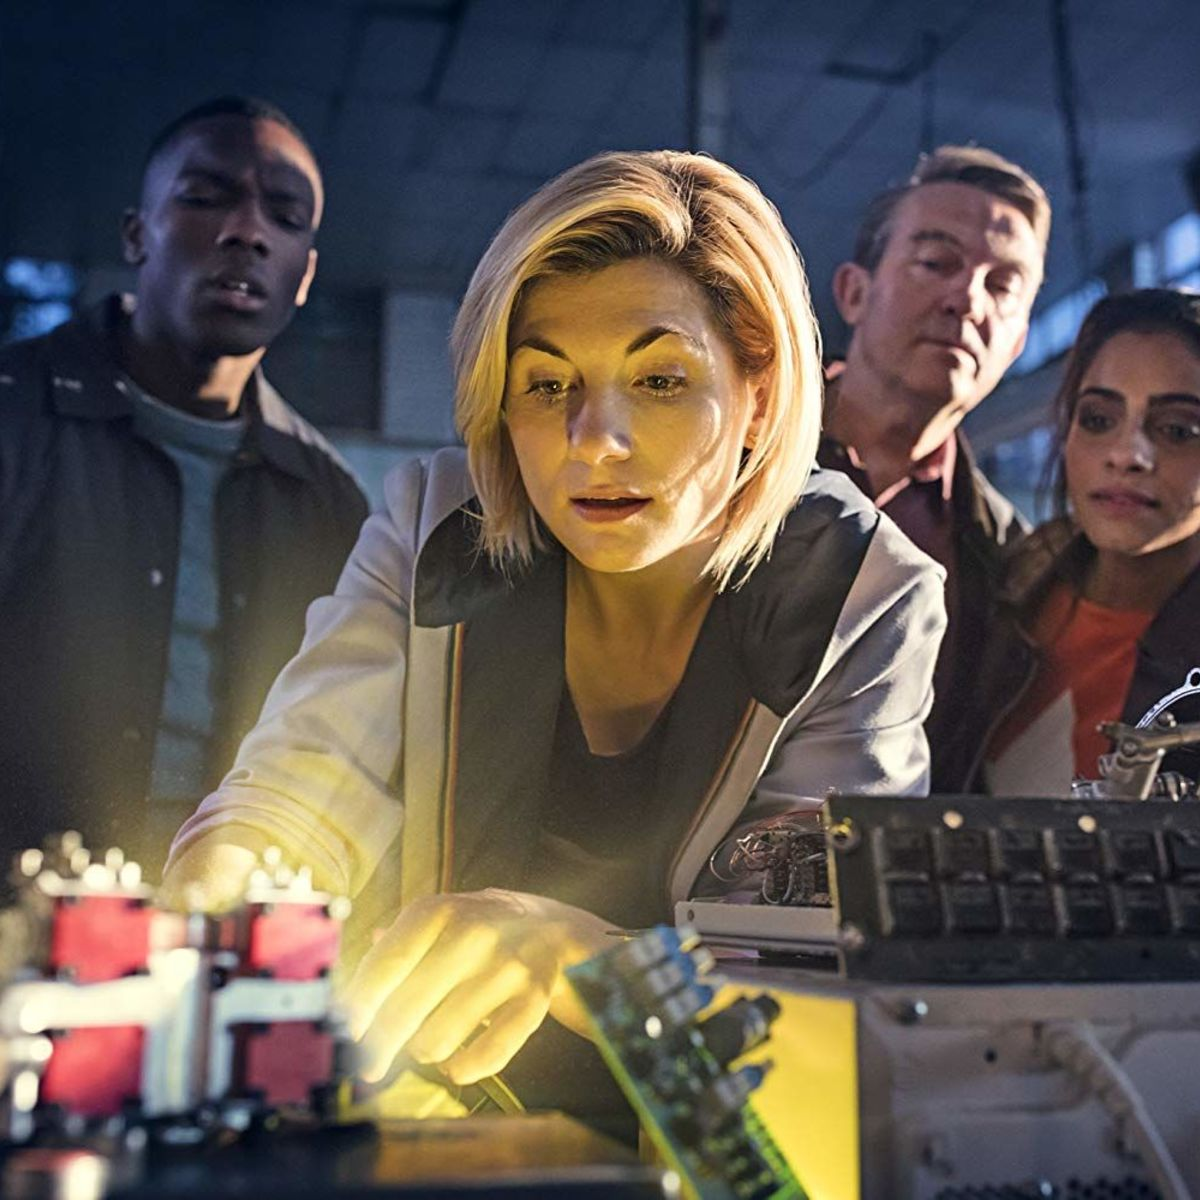 Doctor Who fans face TWO YEAR wait for Jodie Whittaker's return